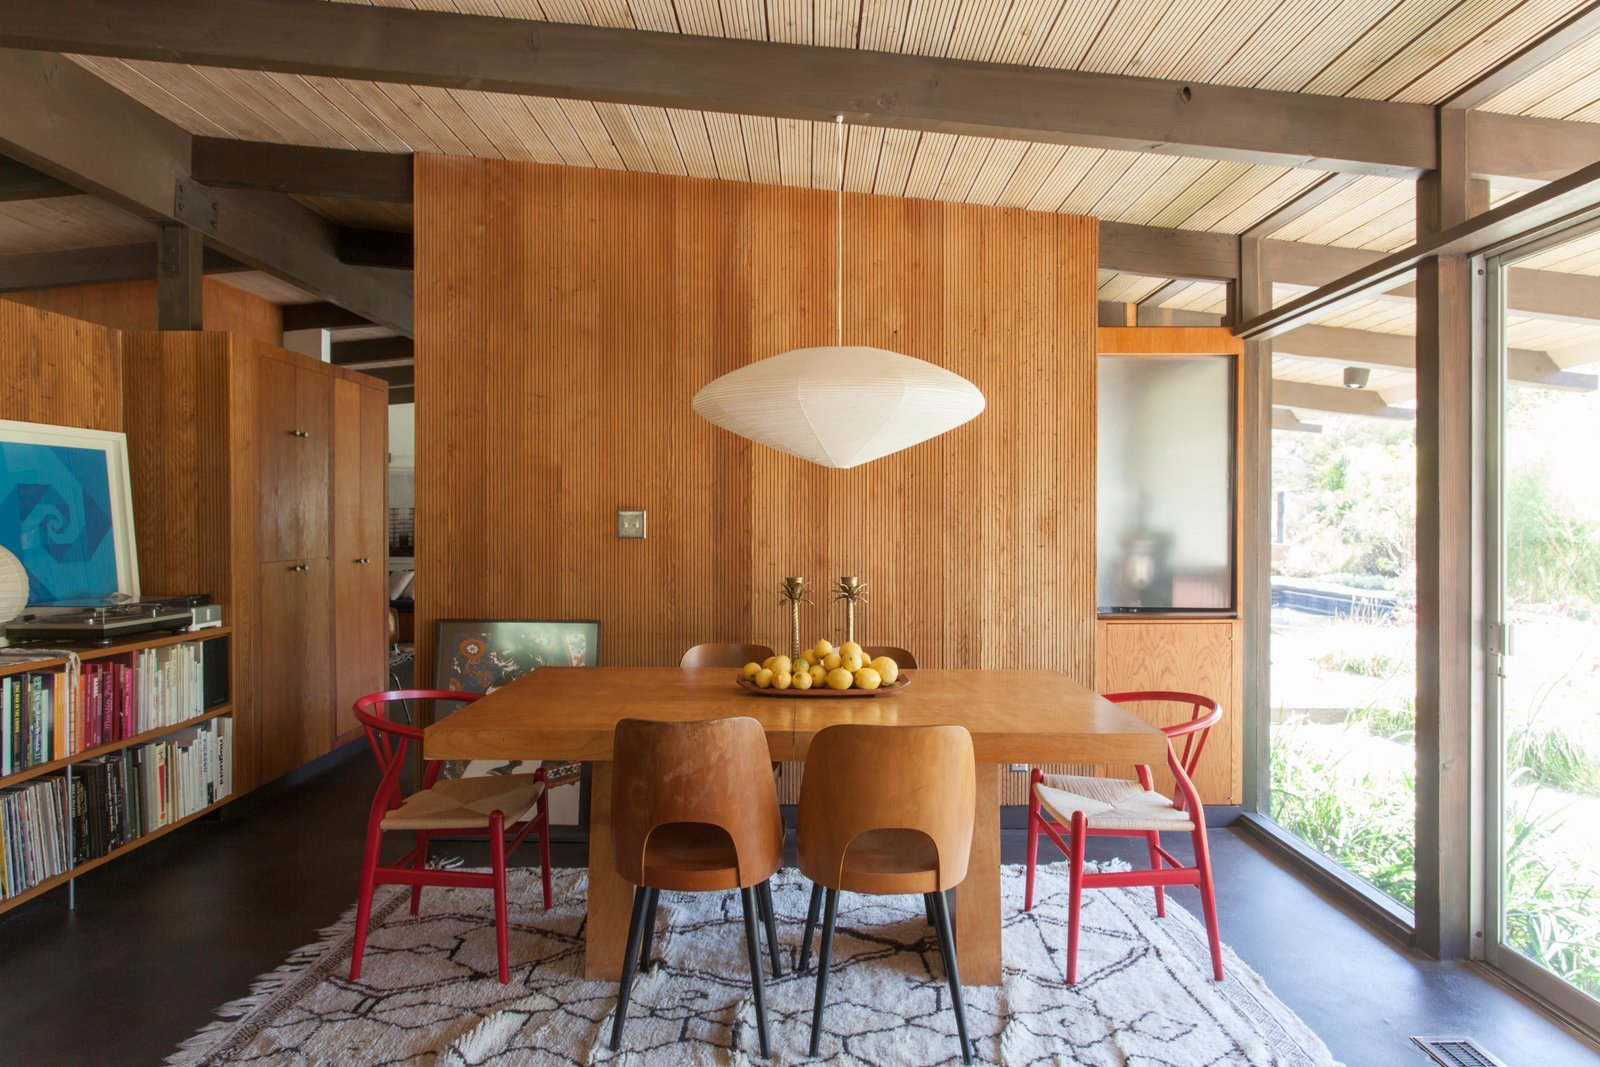 Dining Room, Pendant Lighting, Table, Chair, Rug Floor, and Storage  Photos from Hole Up in This Quintessential Midcentury Modern Rental in Hollywood